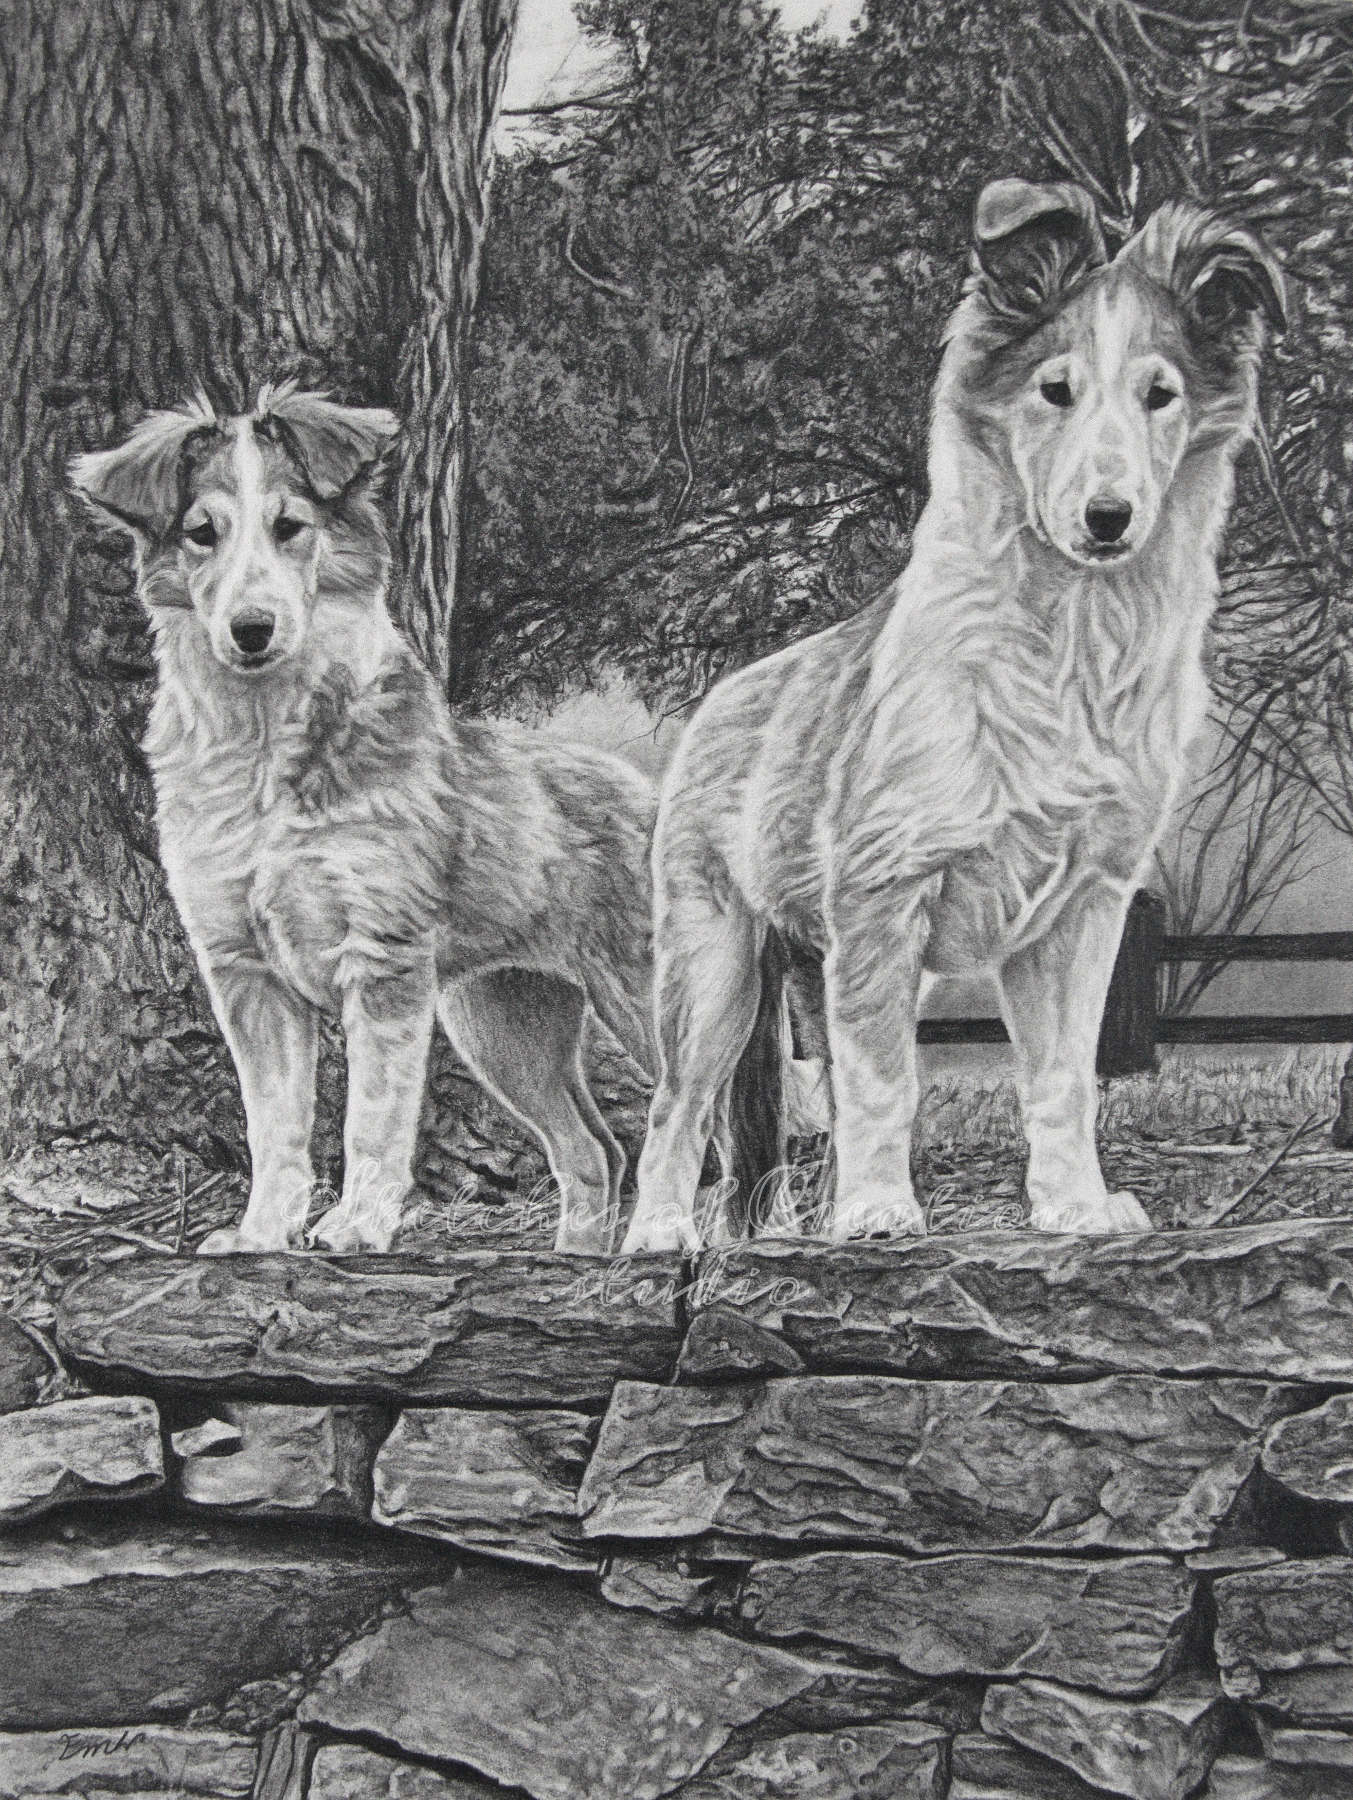 'Poppy and Zeus' a drawing of two dogs. 9x12 inches. Completed May 2020